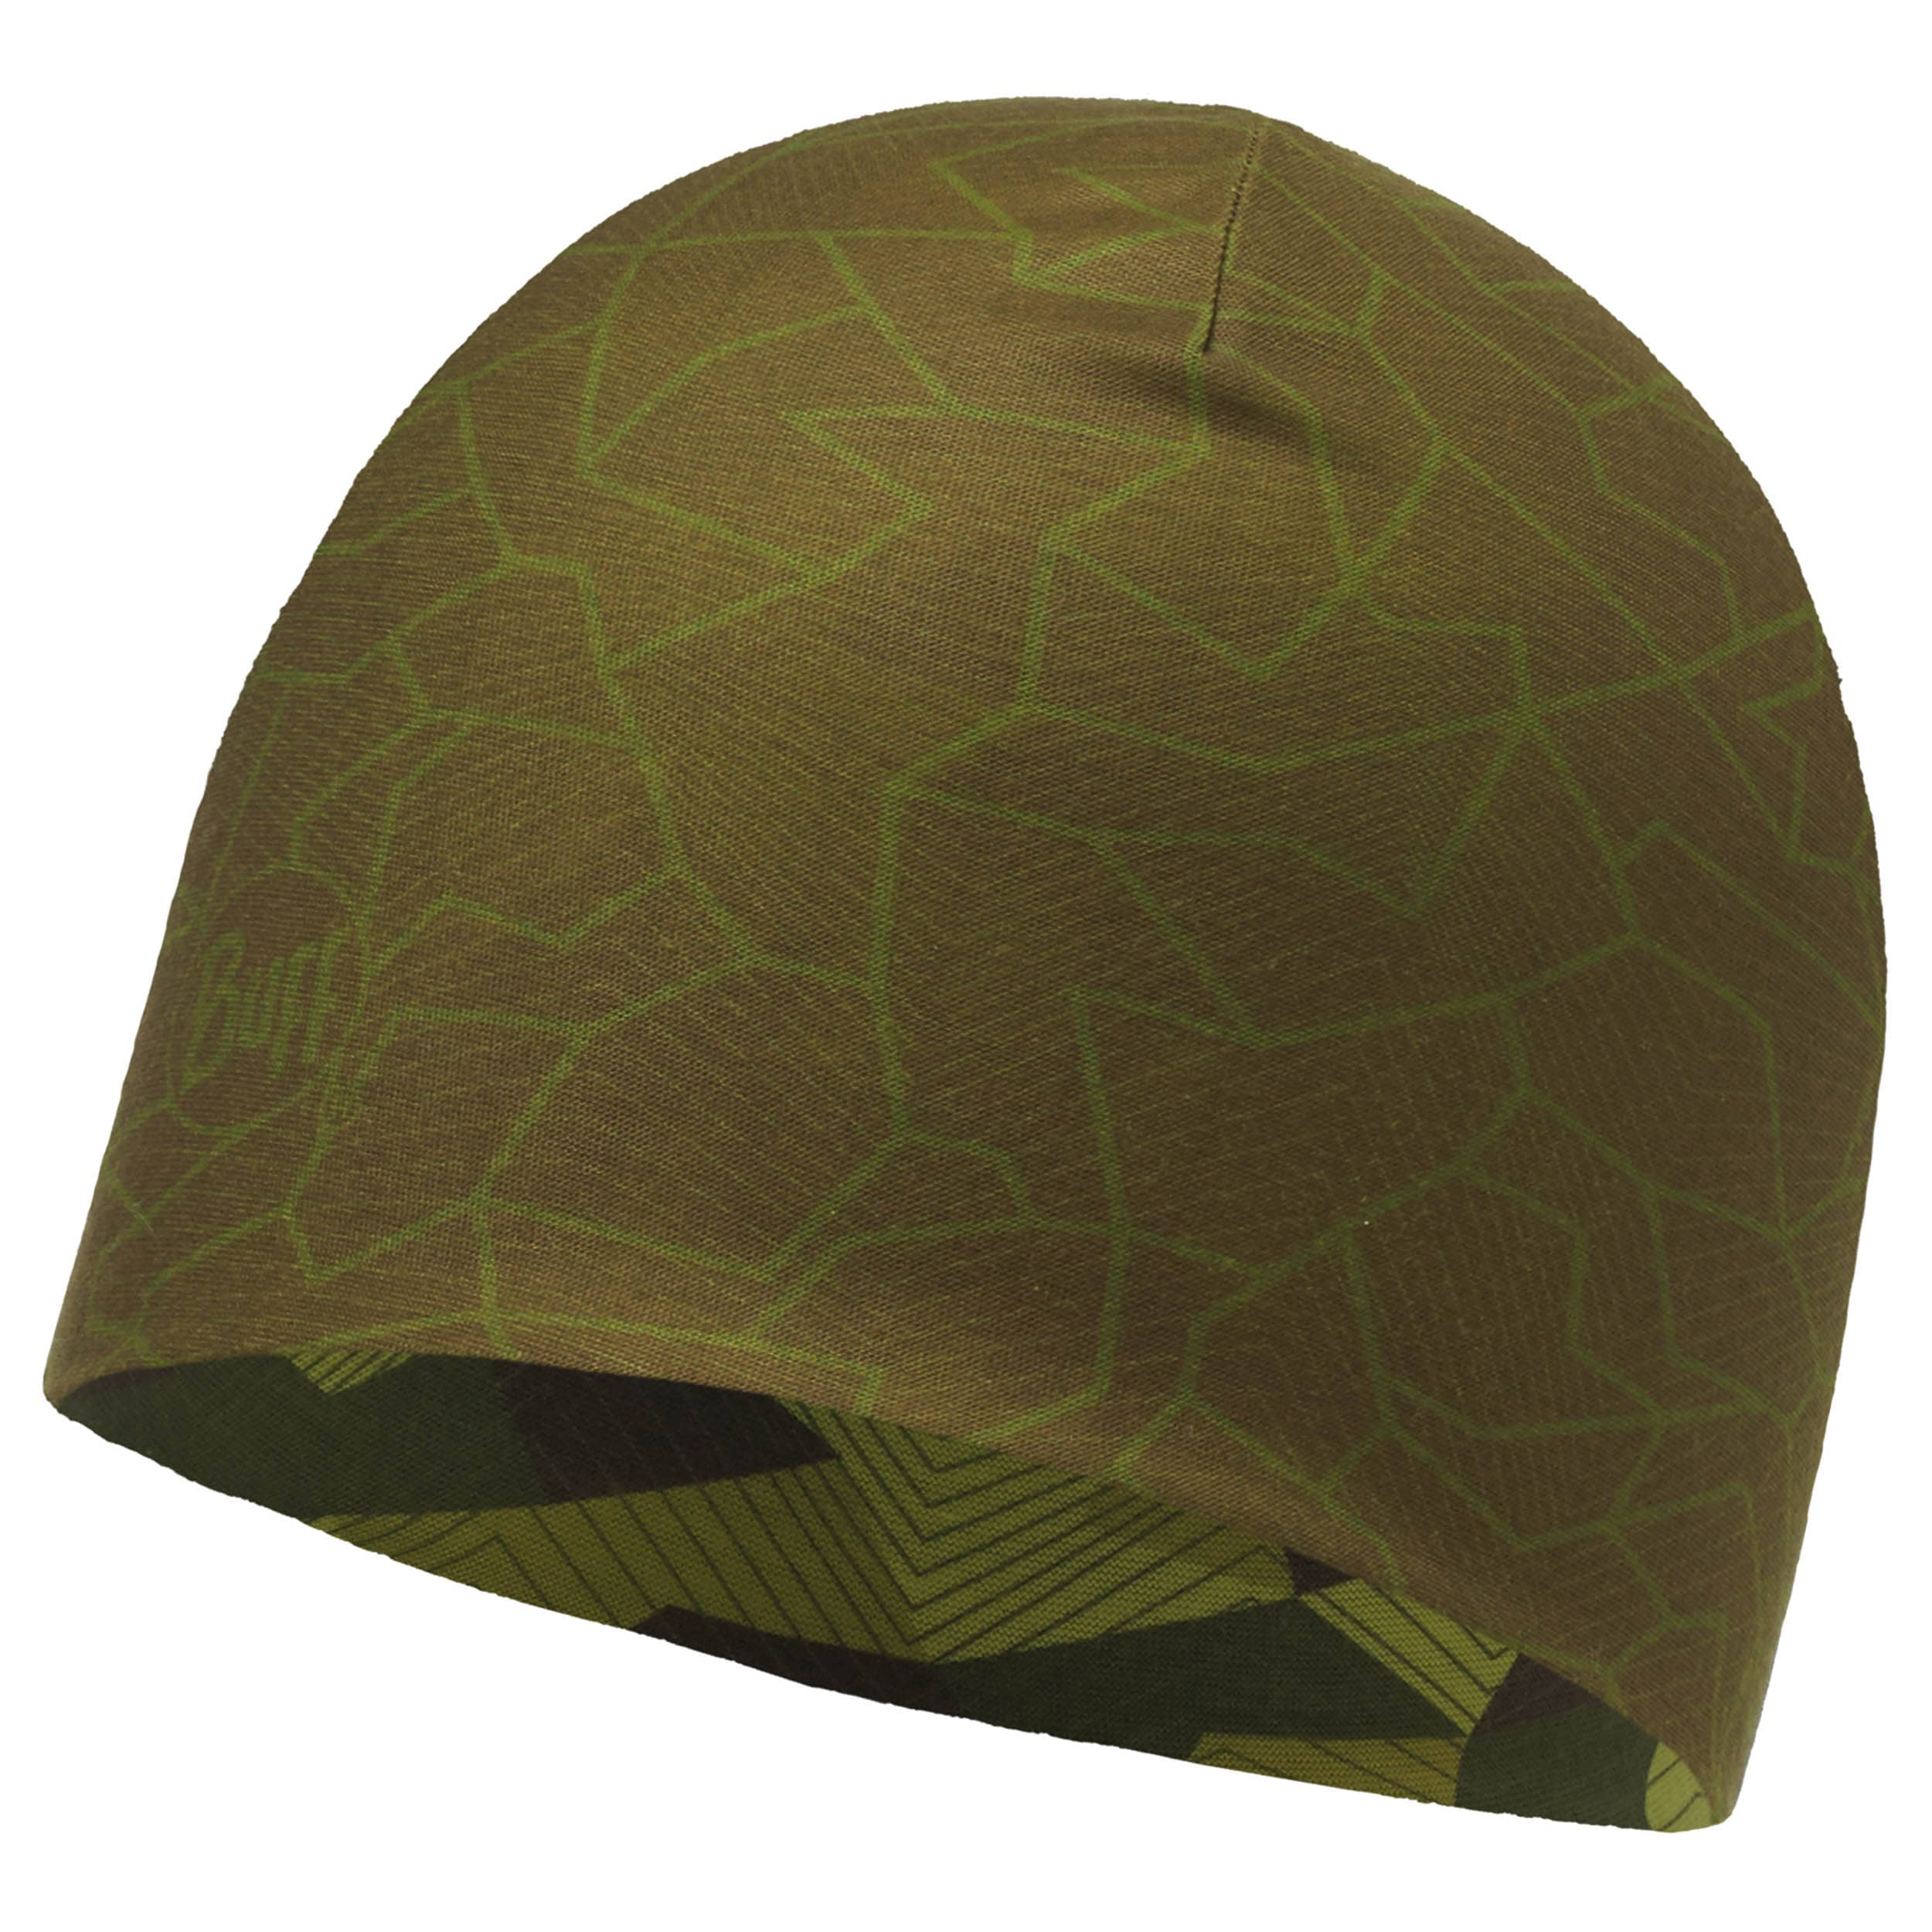 d011f38f66277 ... Reversible Camo Green Beanie Hat by BUFF - camouflage 2 ...